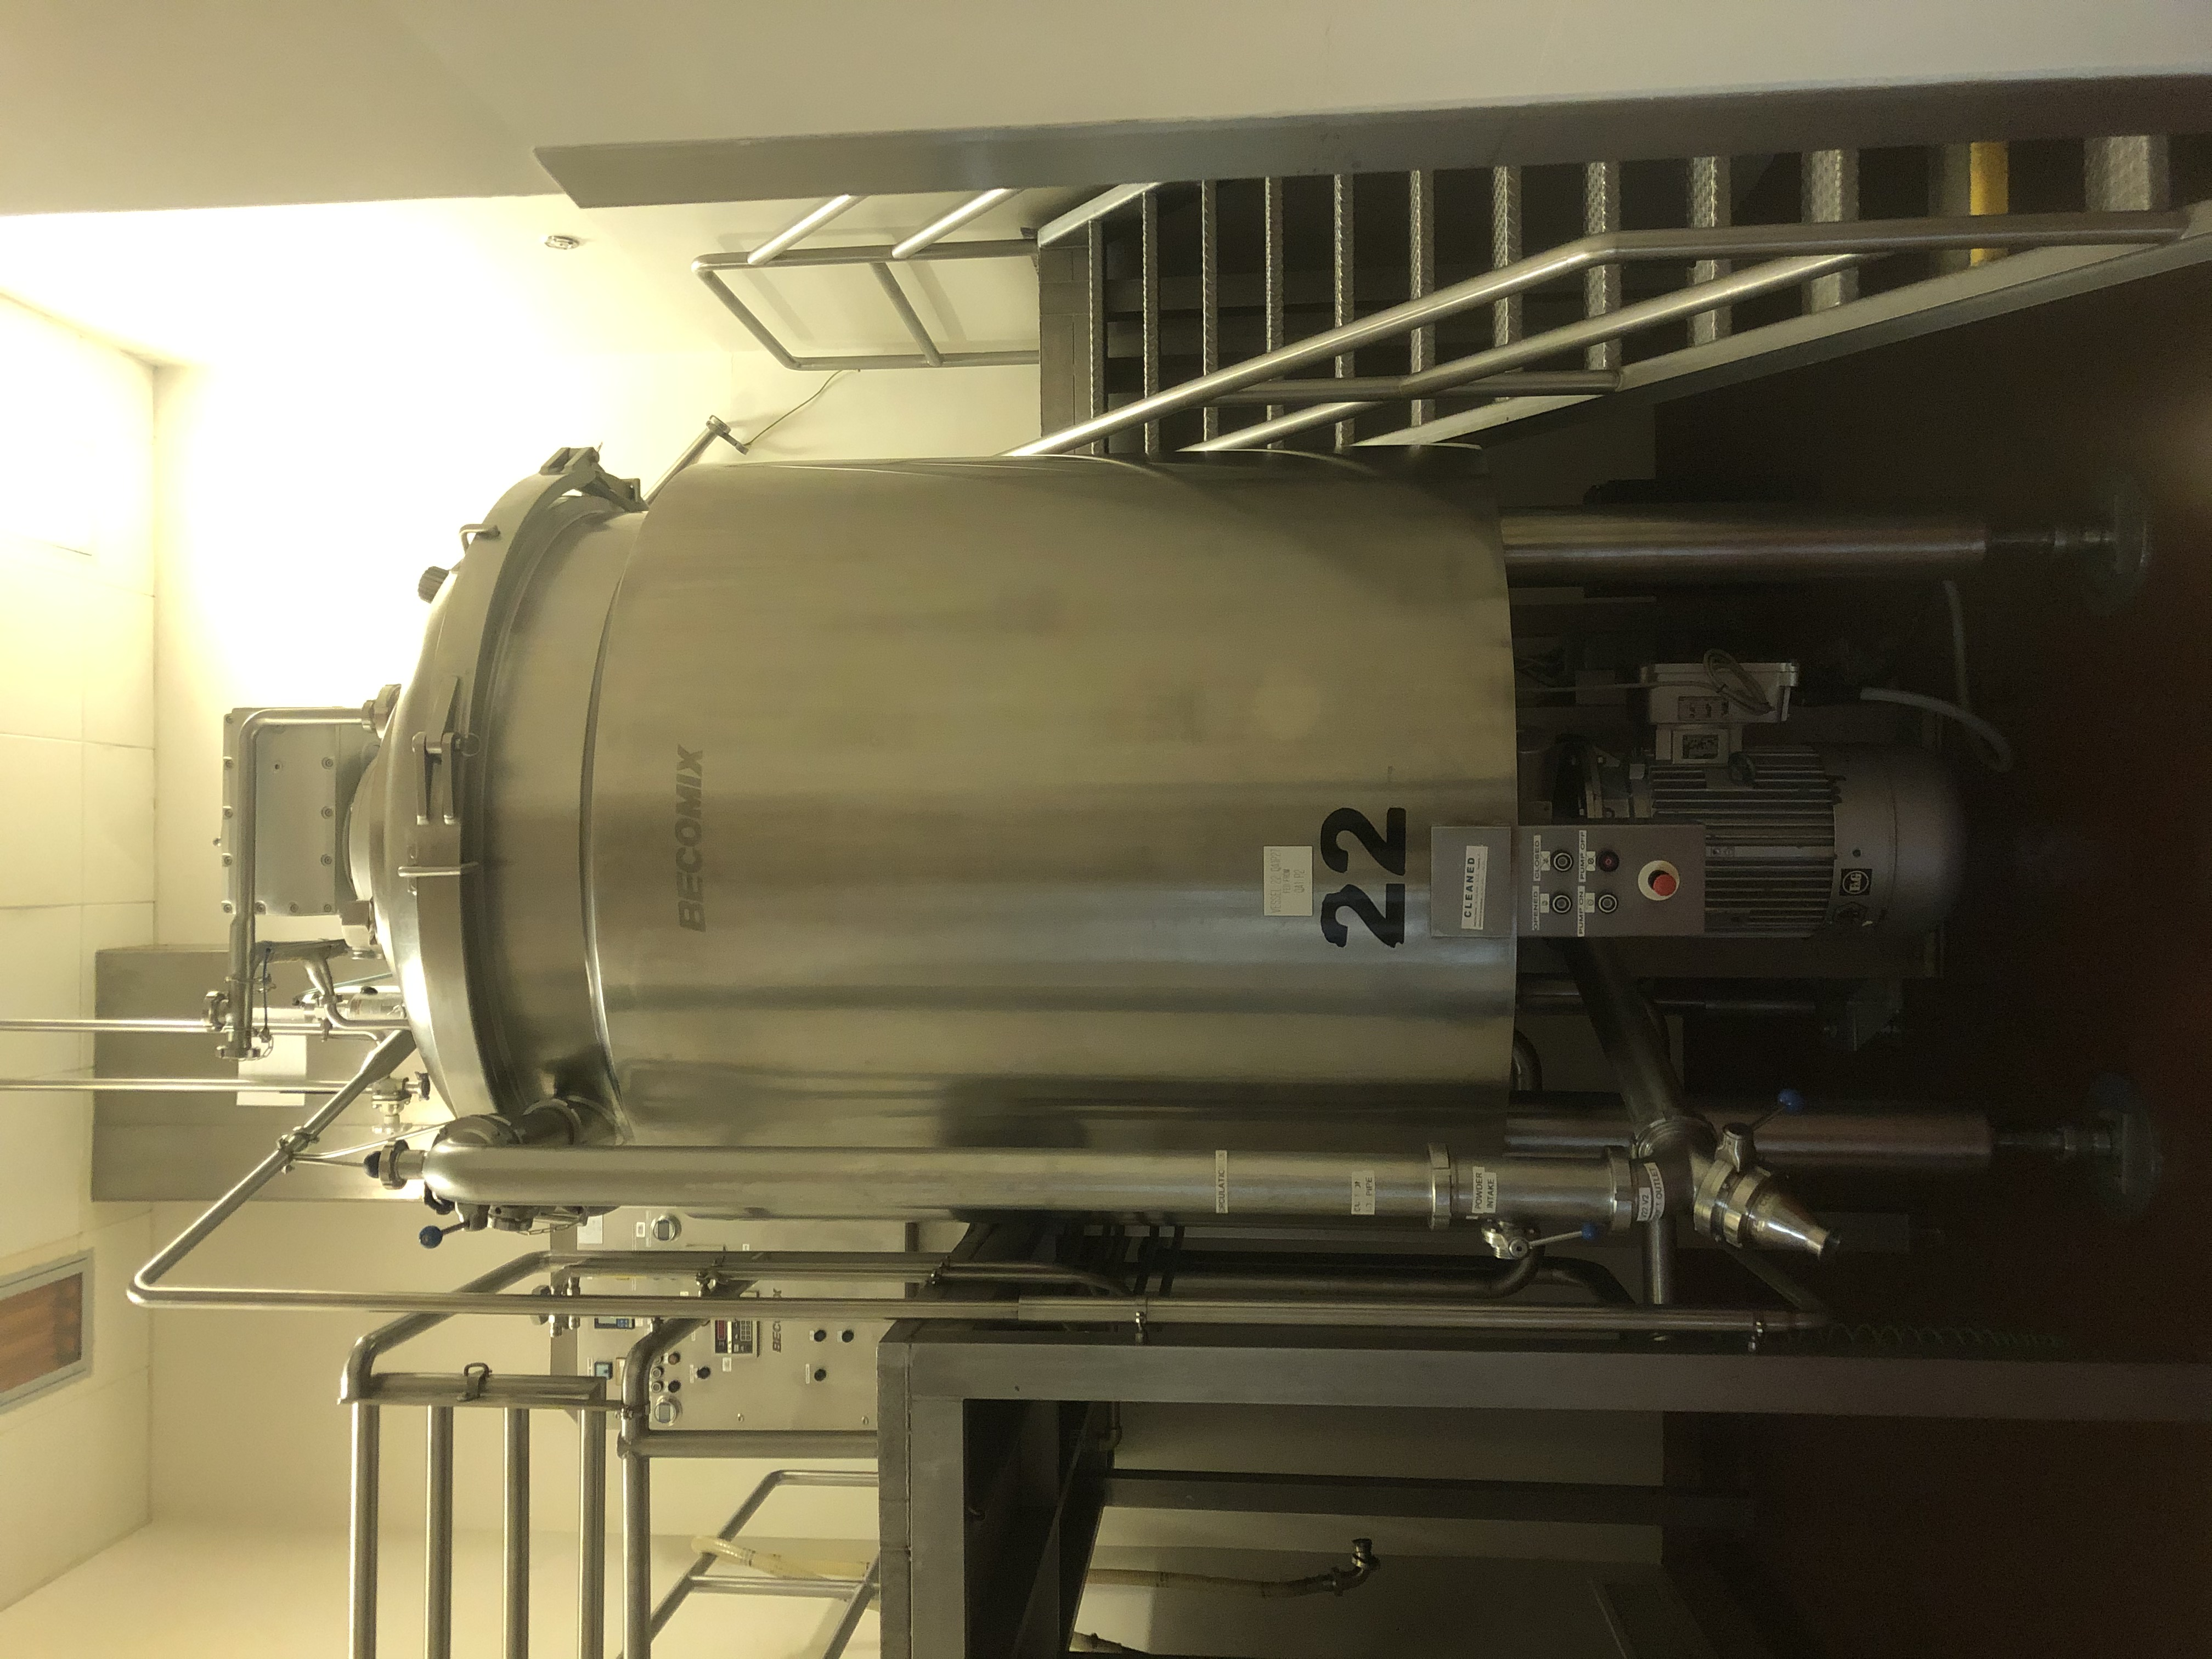 3,000 Litre Becomix Type RW-3000 Stainless Steel Vacuum Processing Vessel